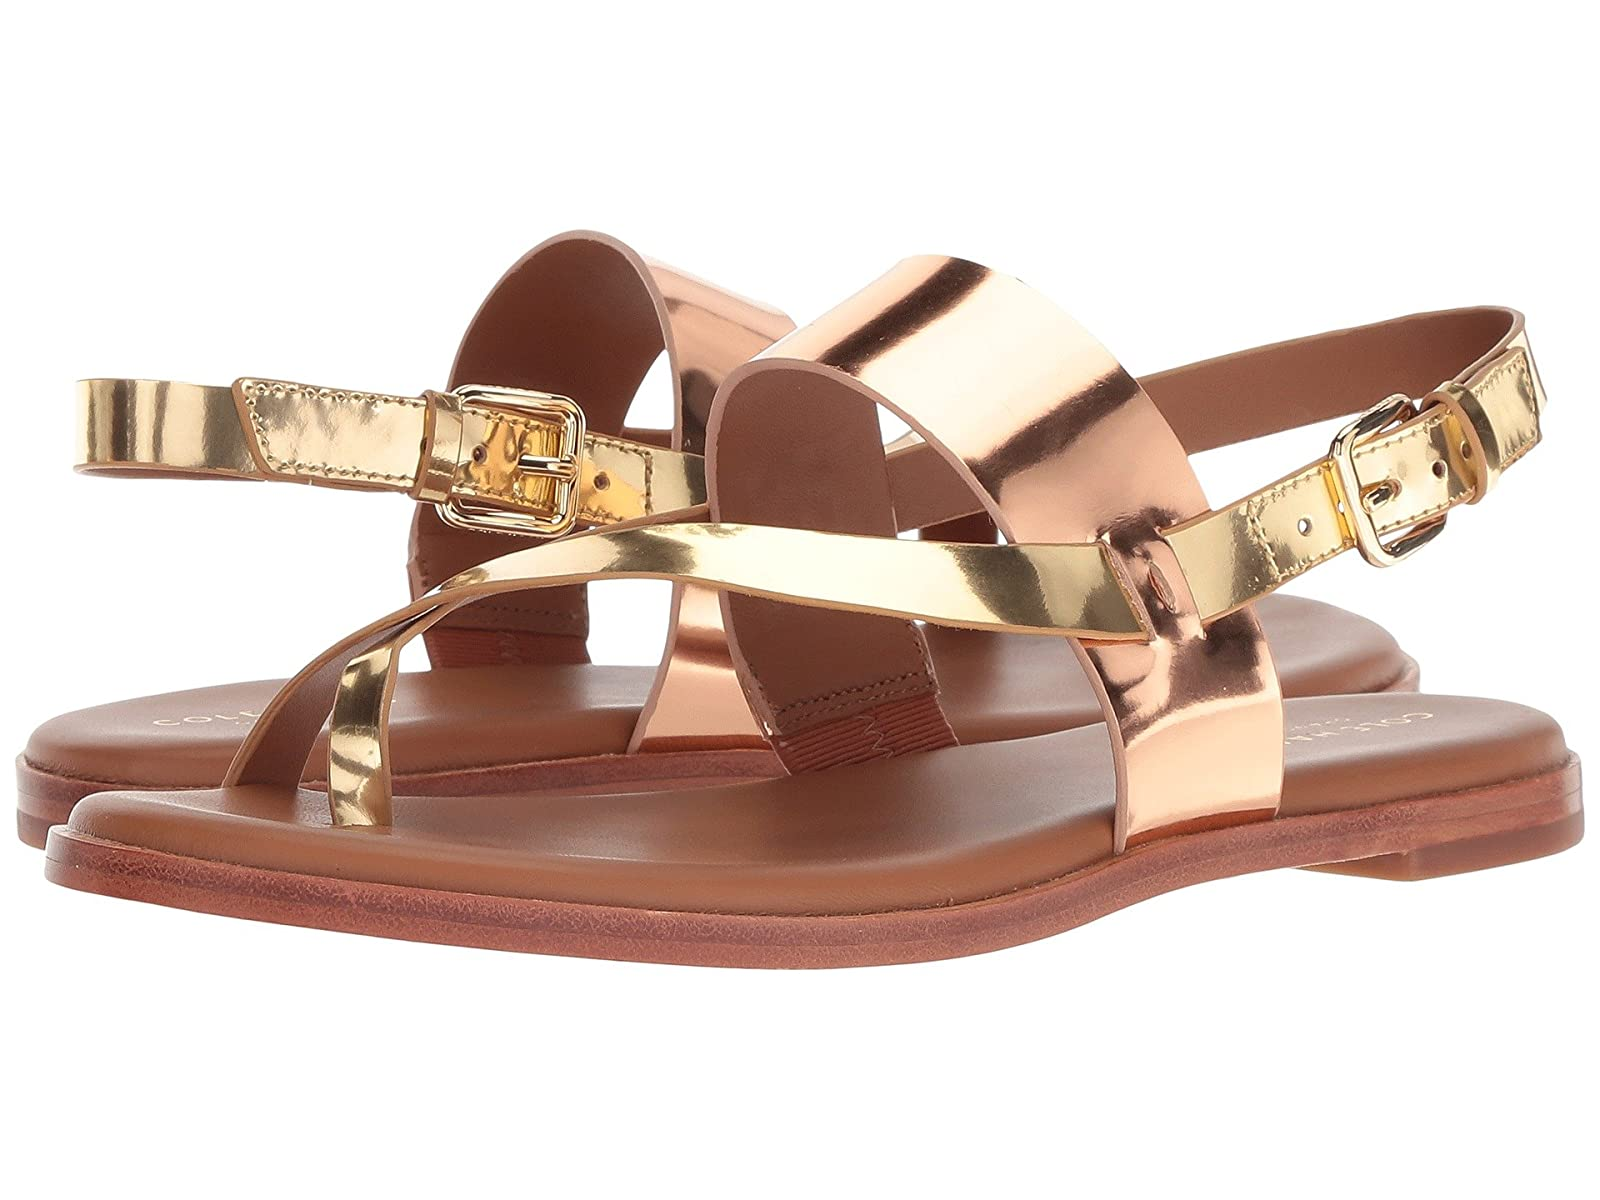 Cole Haan Anica Thong SandalComfortable and distinctive shoes